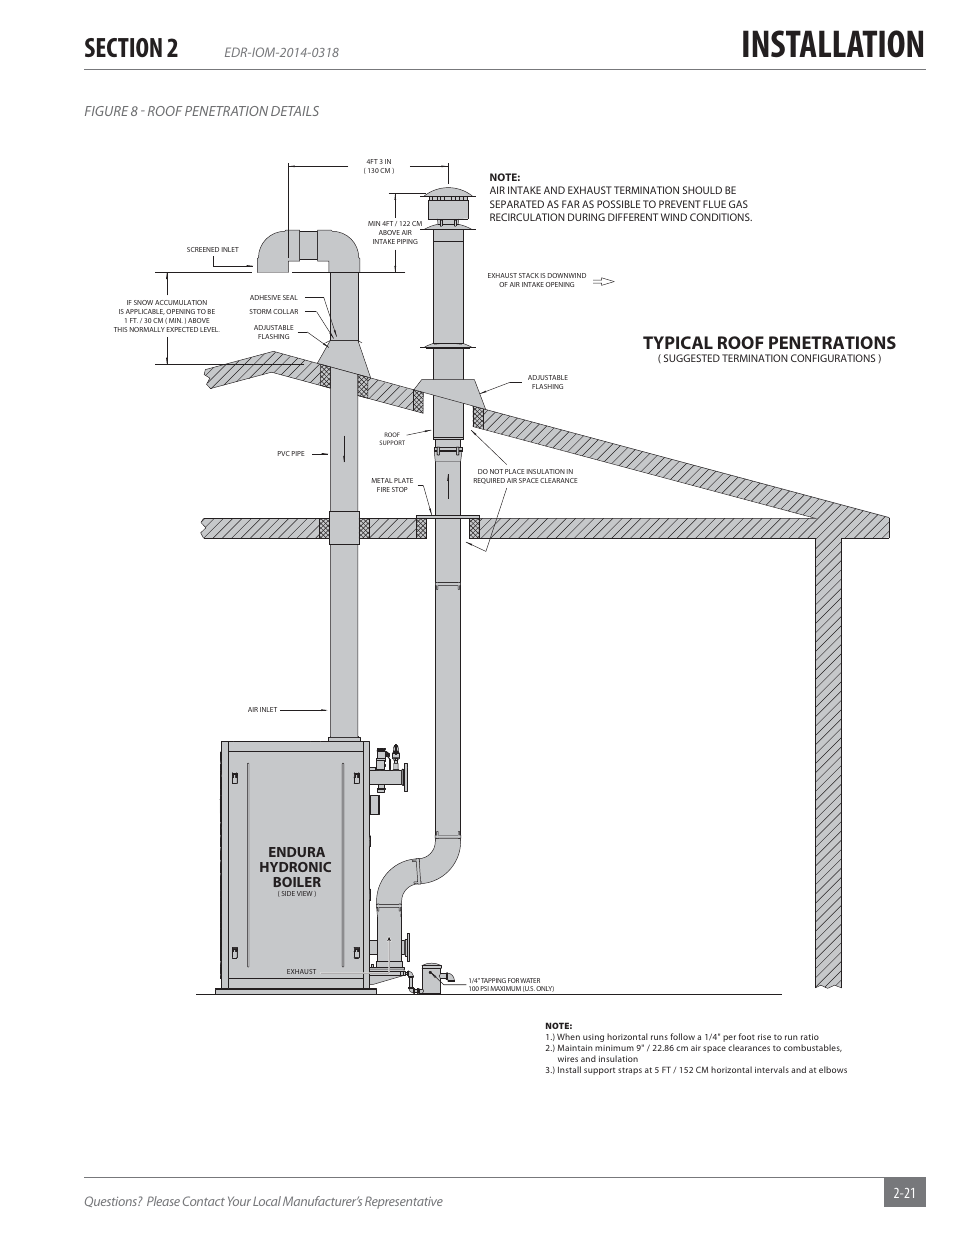 Installation Typical Roof Penetrations Endura Hydronic